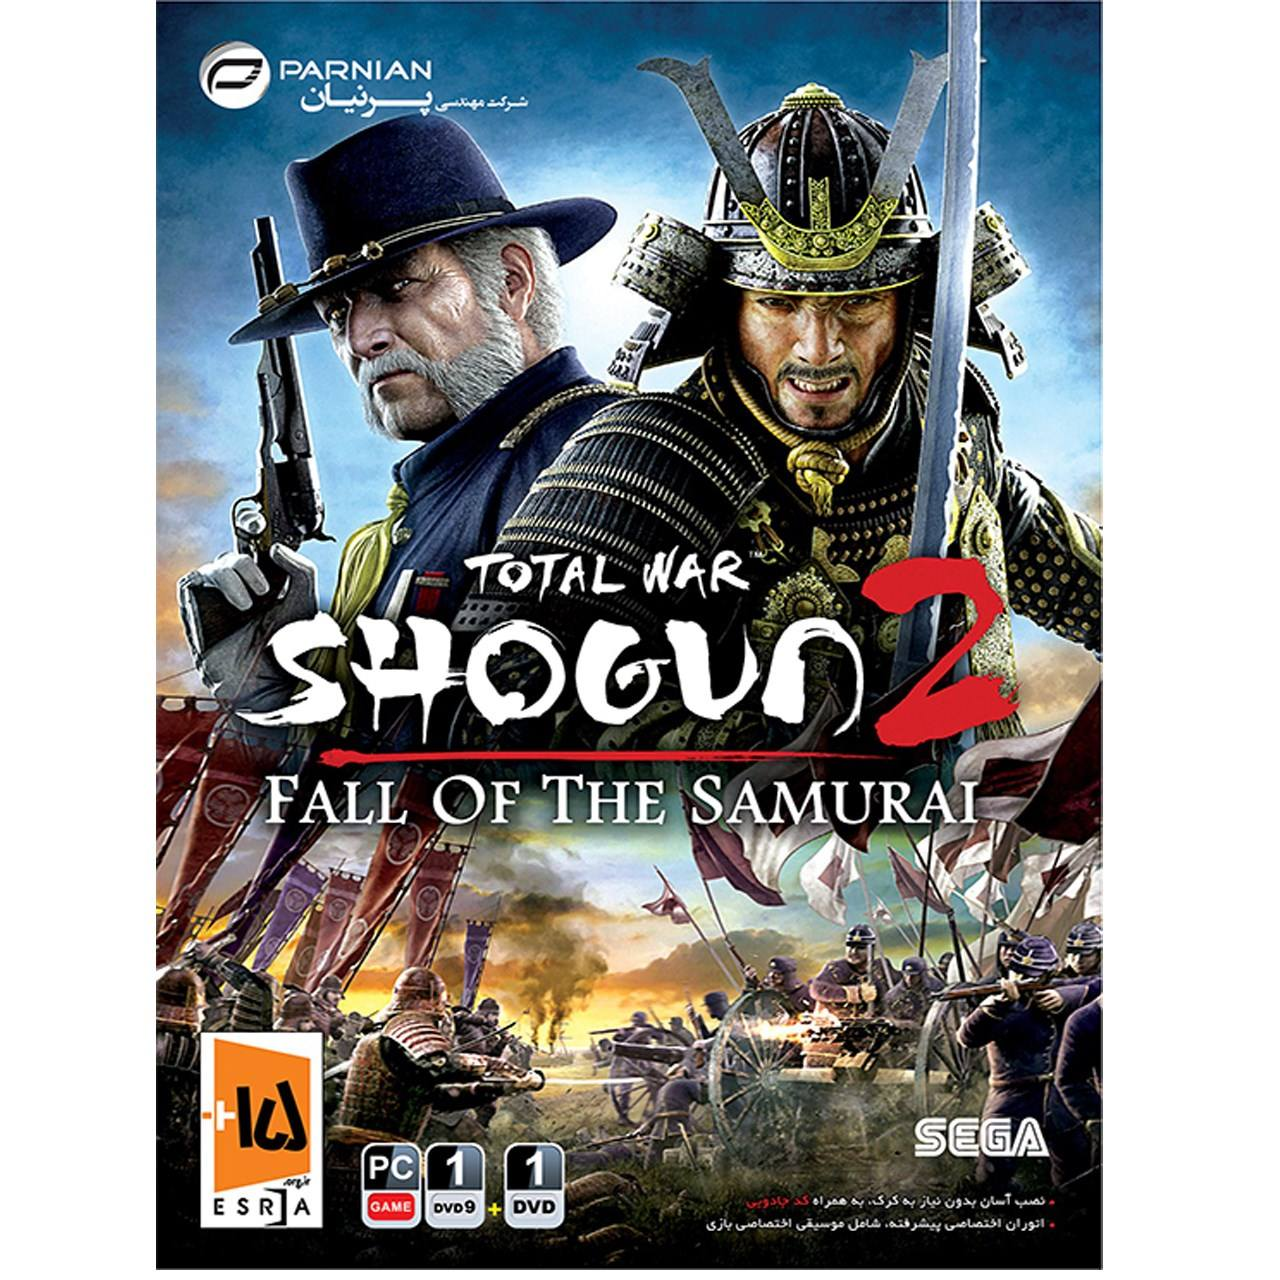 بازی total war shogun2 مخصوص PC نشر پرنیان